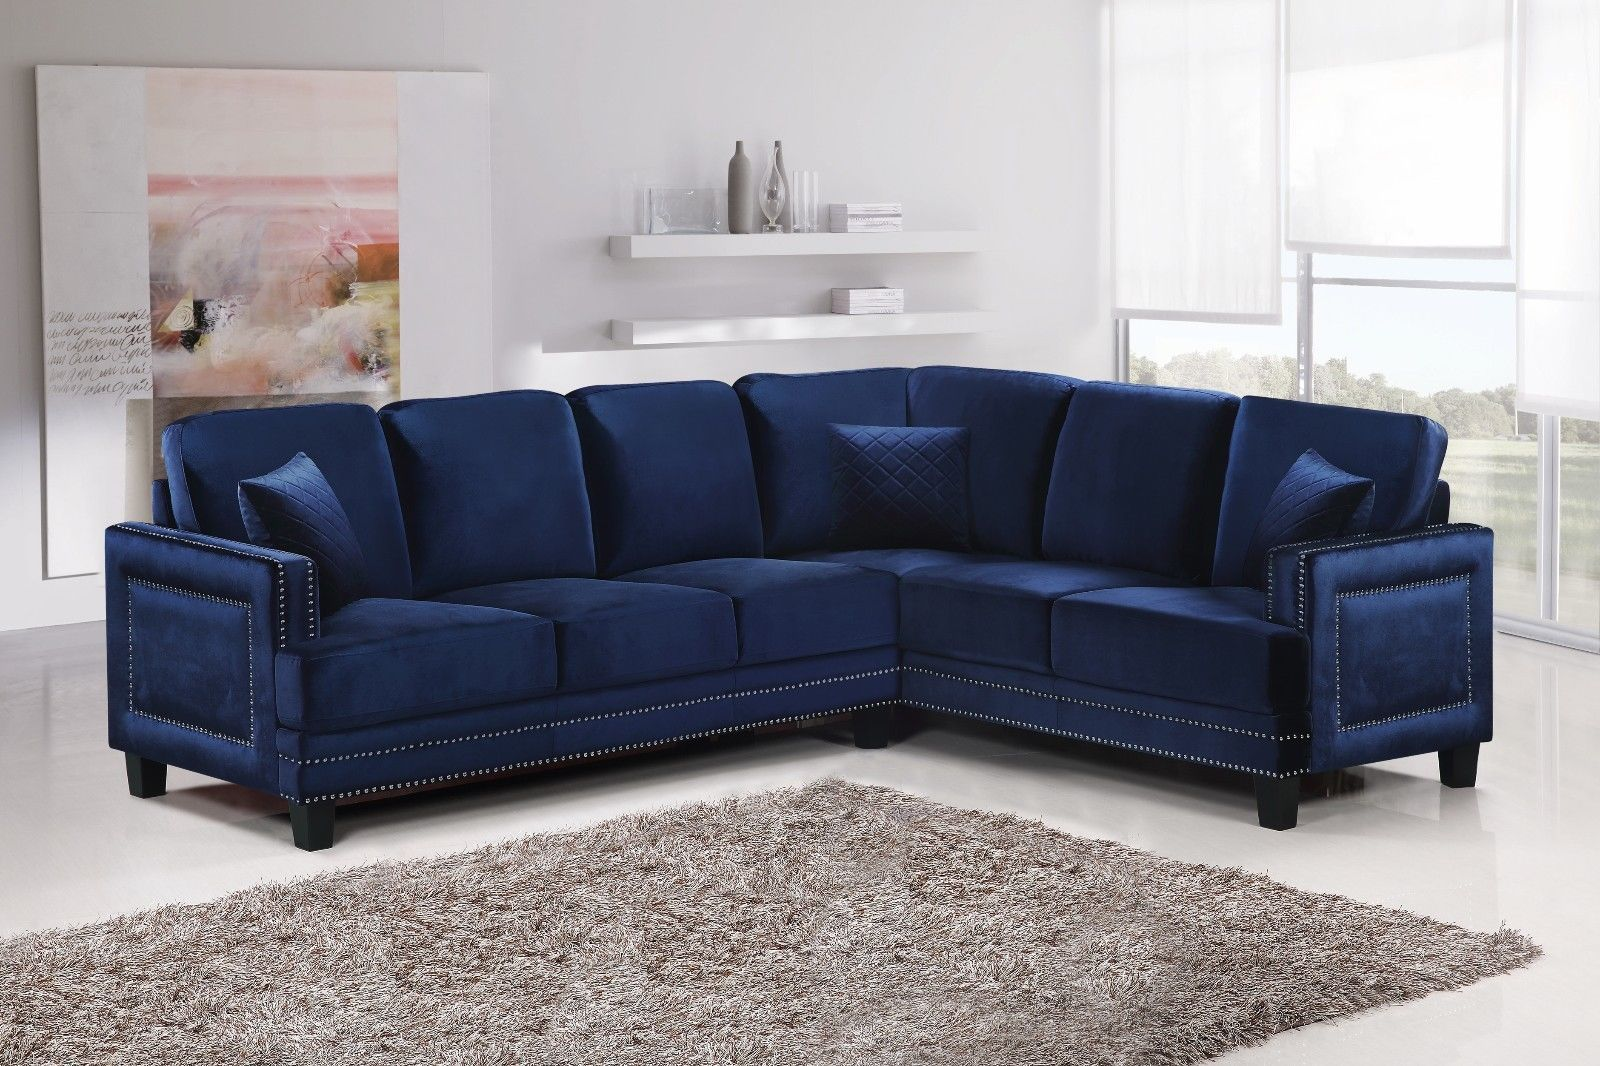 Meridian 655 Navy Velvet Sectional Sofa Right Hand Facing Contemporary Style